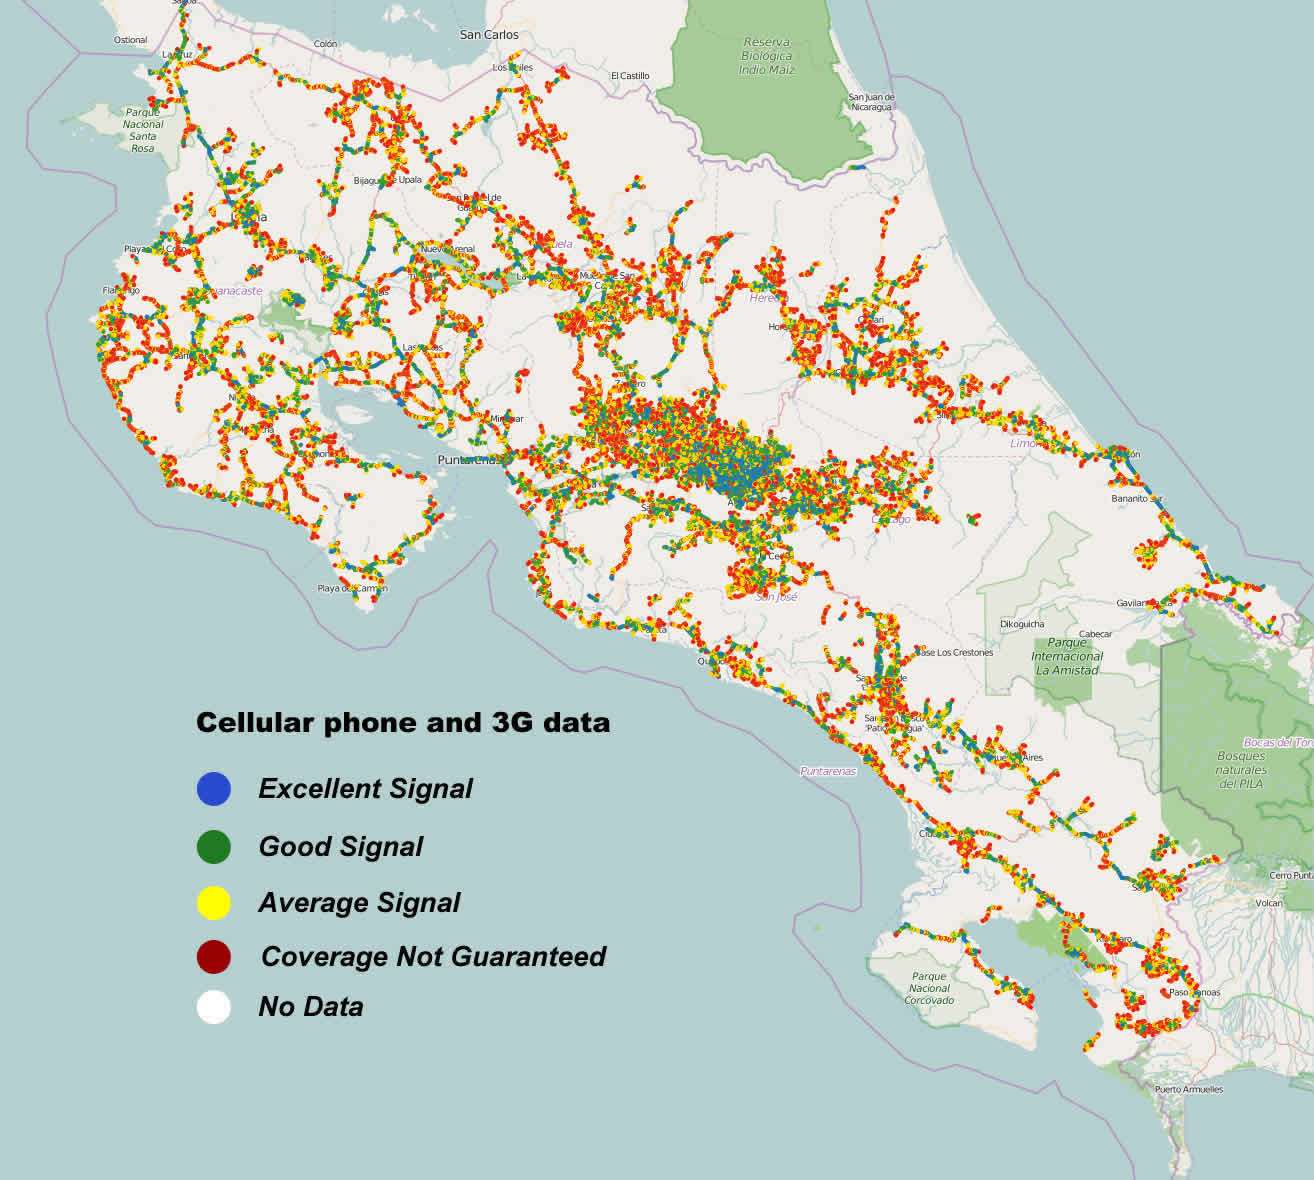 Cell Phone & Data Coverage Map of Costa Rica